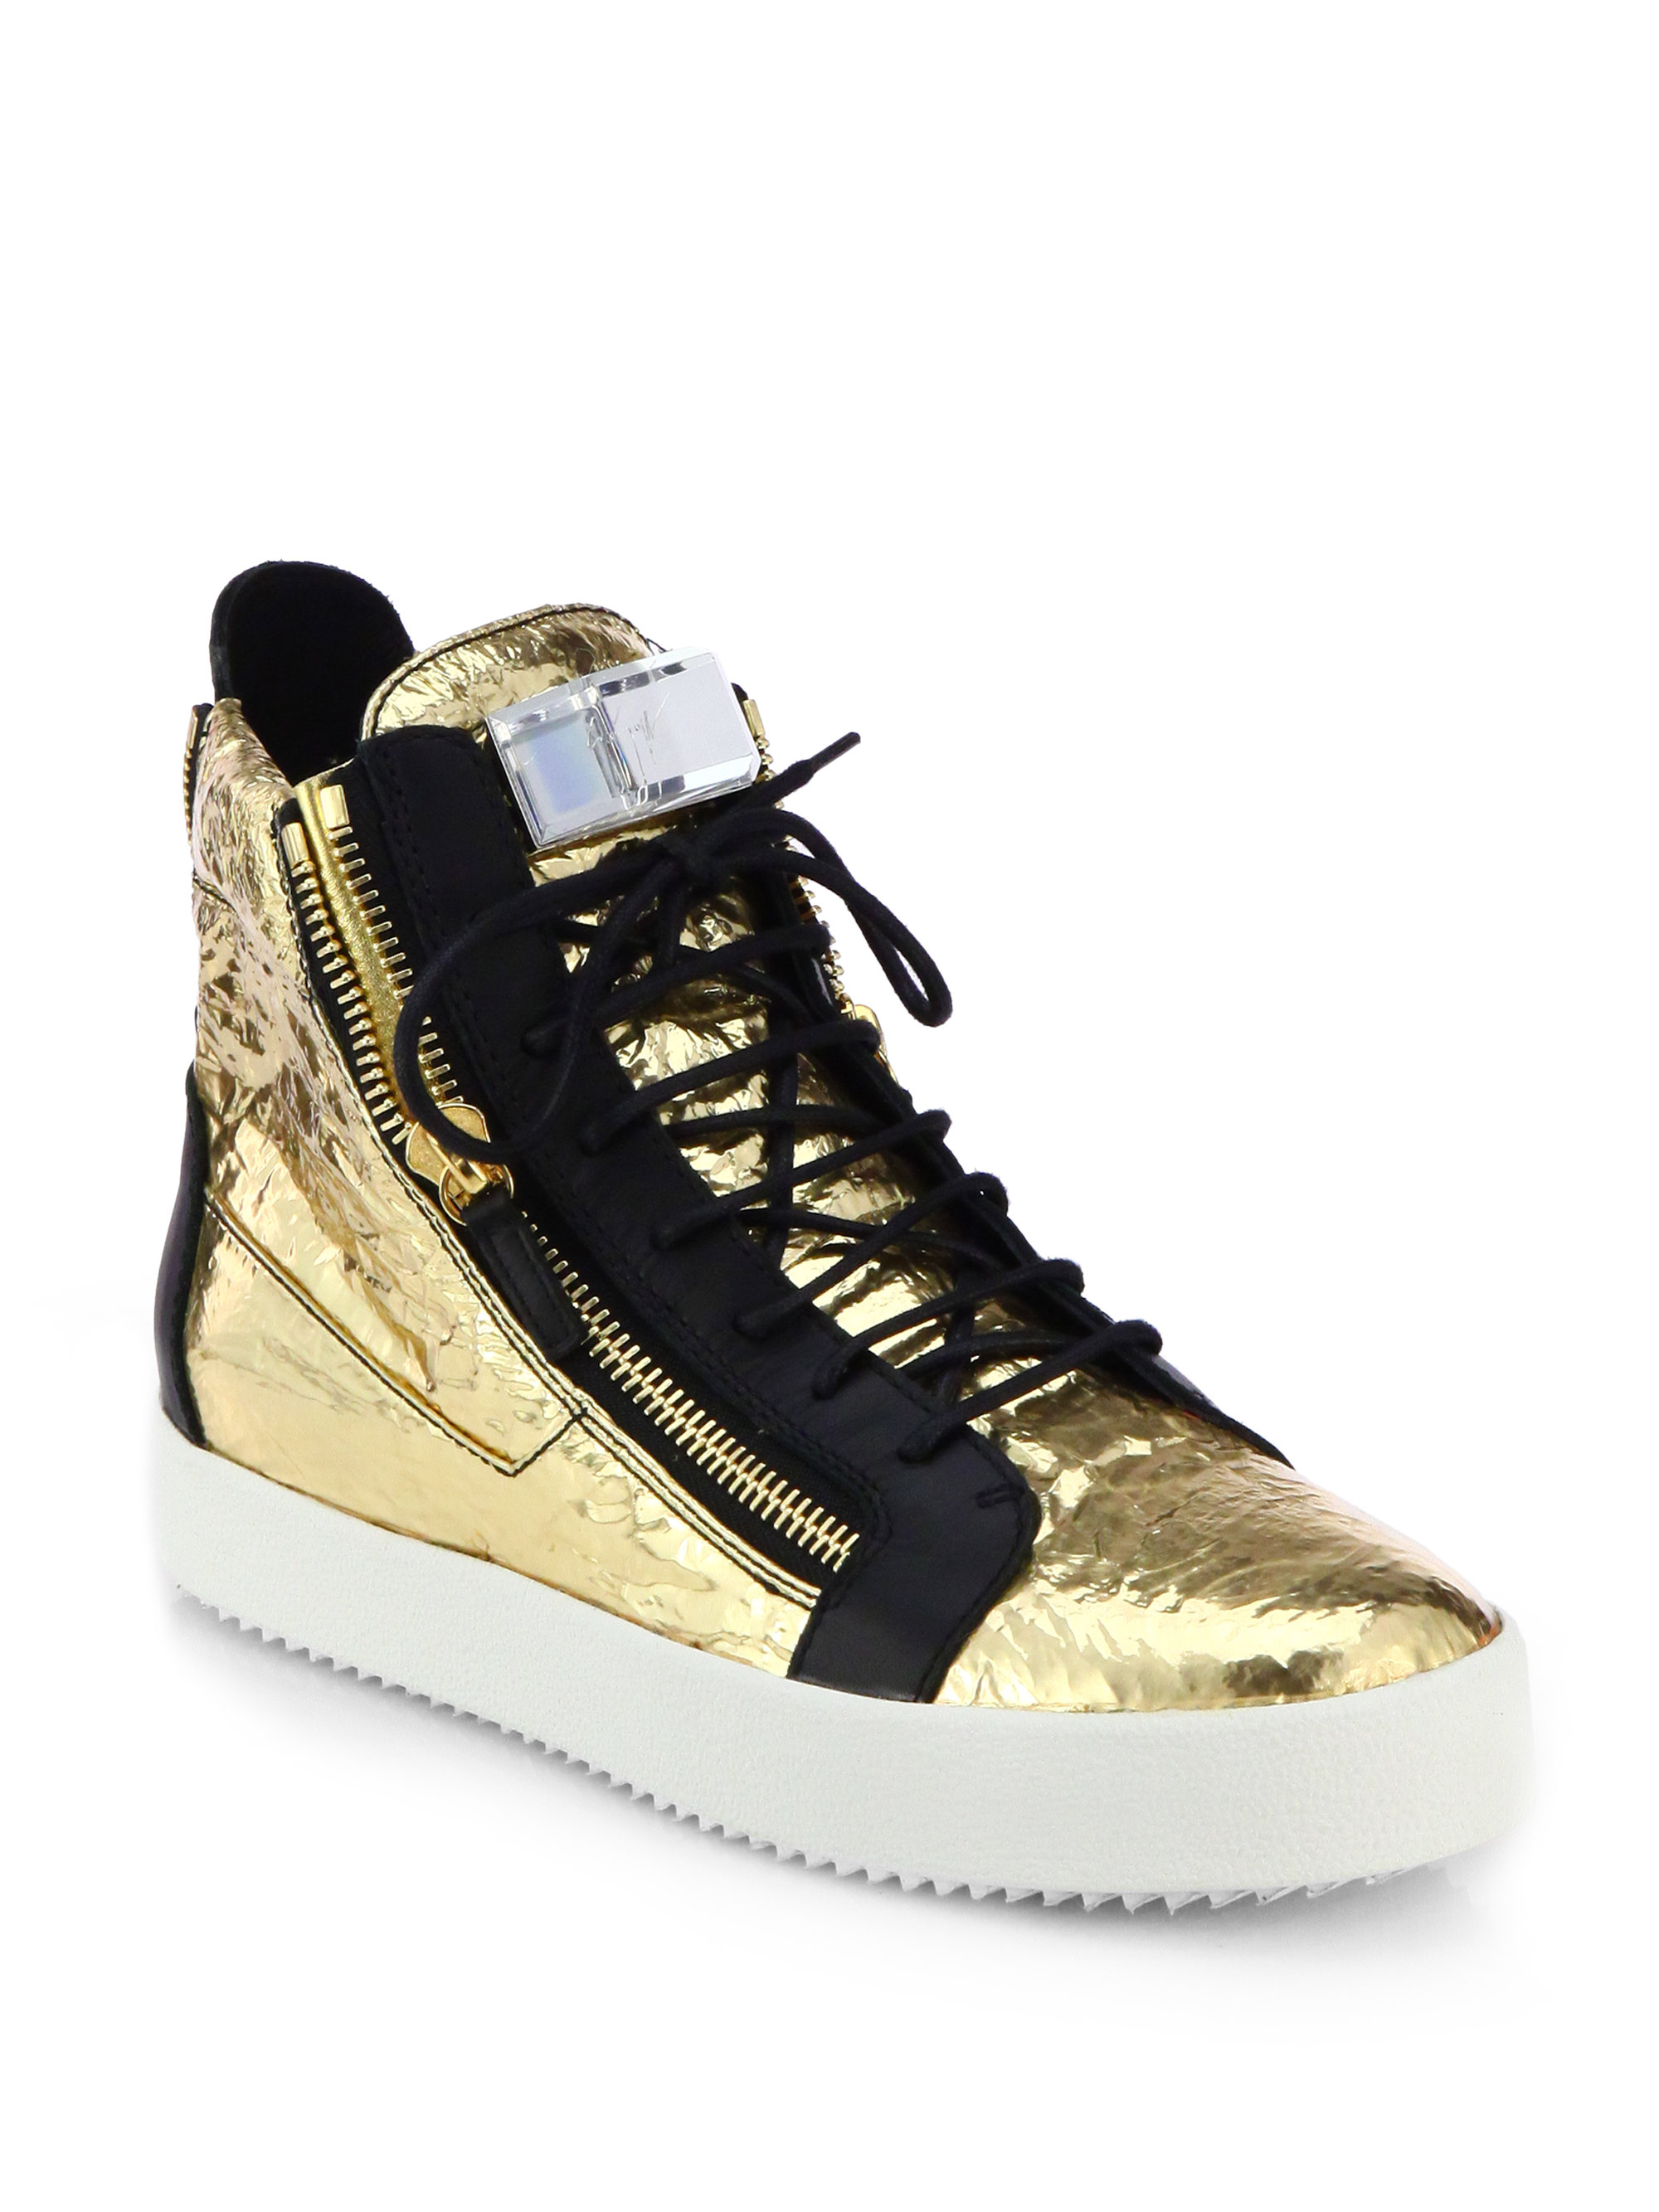 Lyst - Giuseppe Zanotti Foiled Leather & Crystal High-Top ...